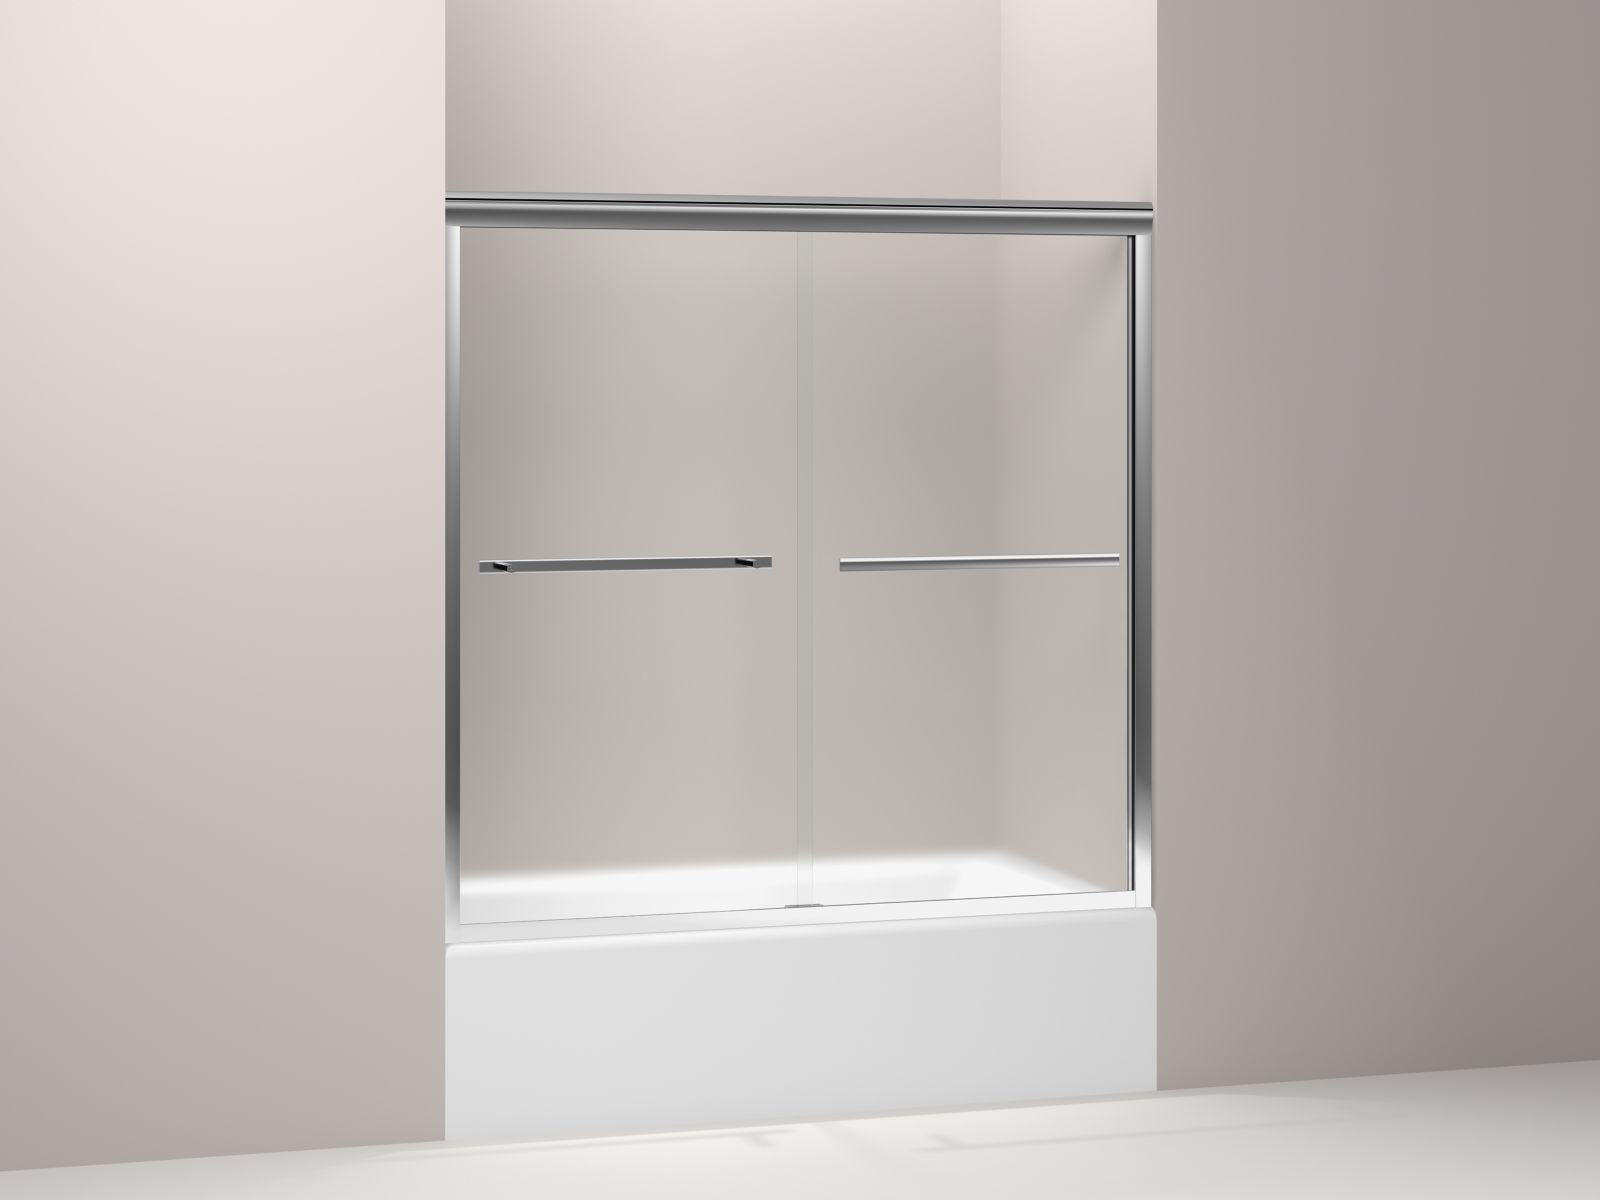 "Kohler Gradient™ K-709062-D3-SHP sliding bath door 58-1/16"" H x 59-5/8"" W, with 1/4"" thick Frosted glass Bright Polished Silver"